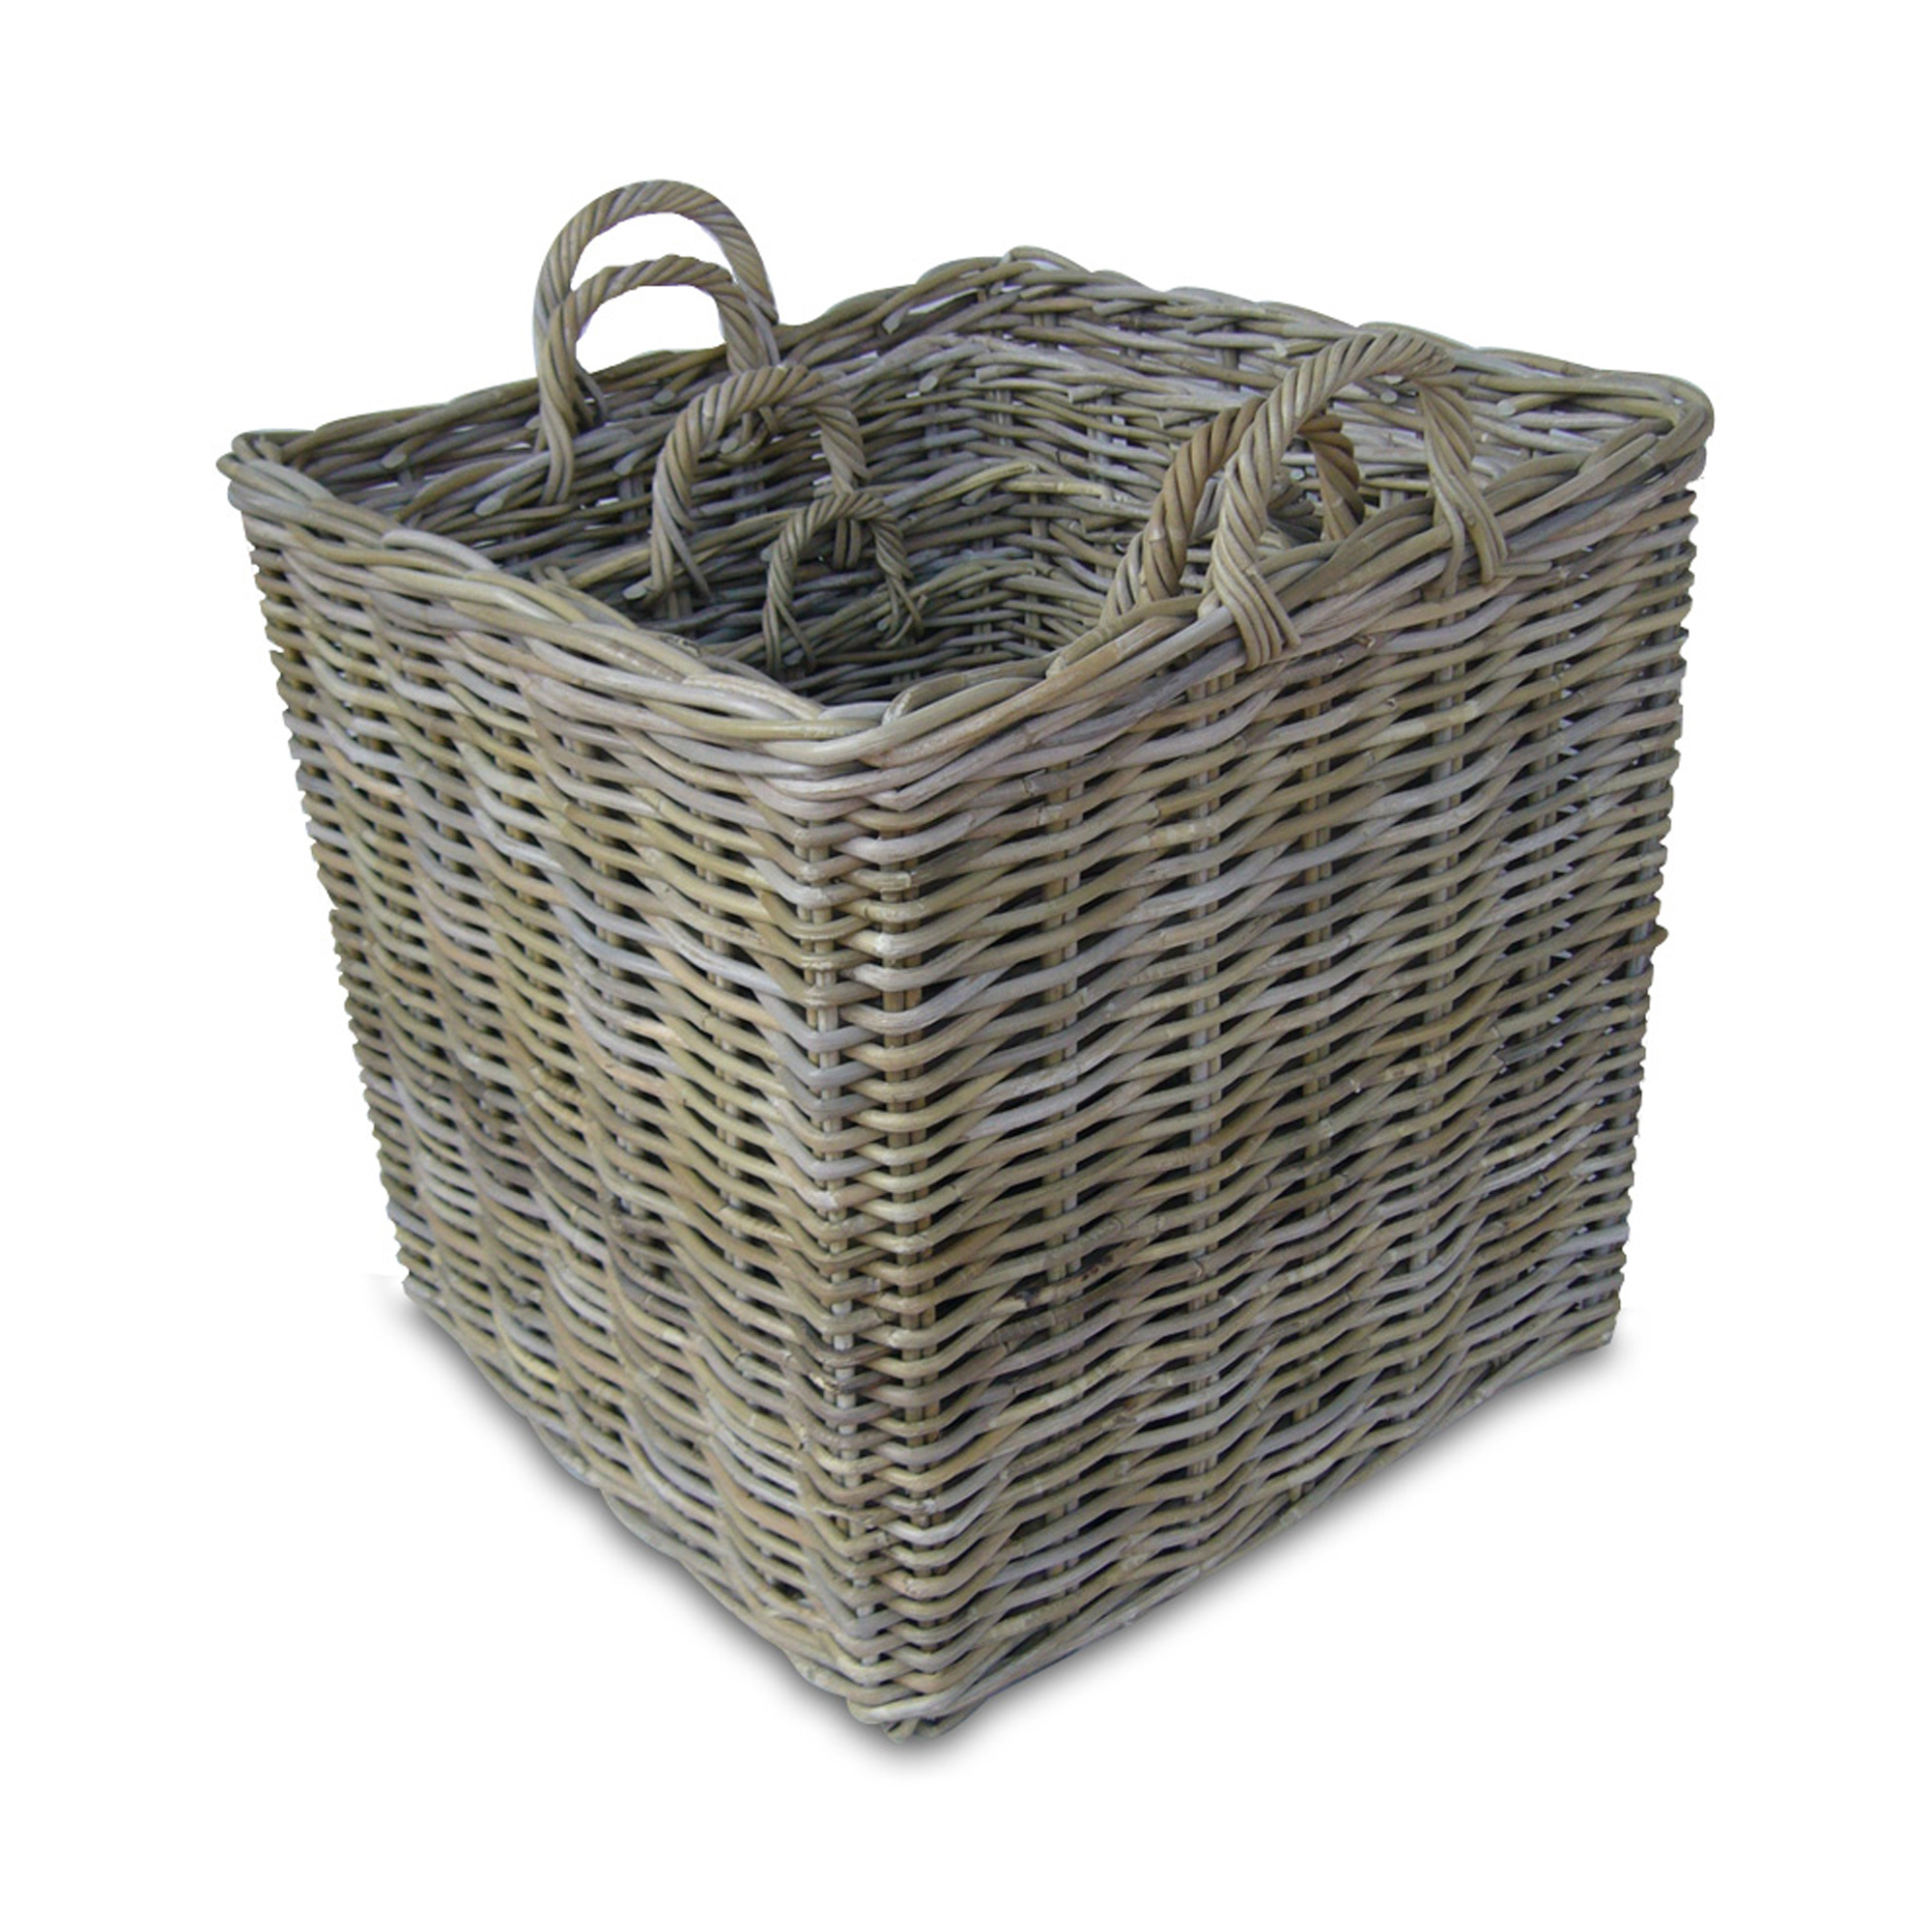 Rattan Basket Square - No 44 Furniture & Fine Things, Cobham